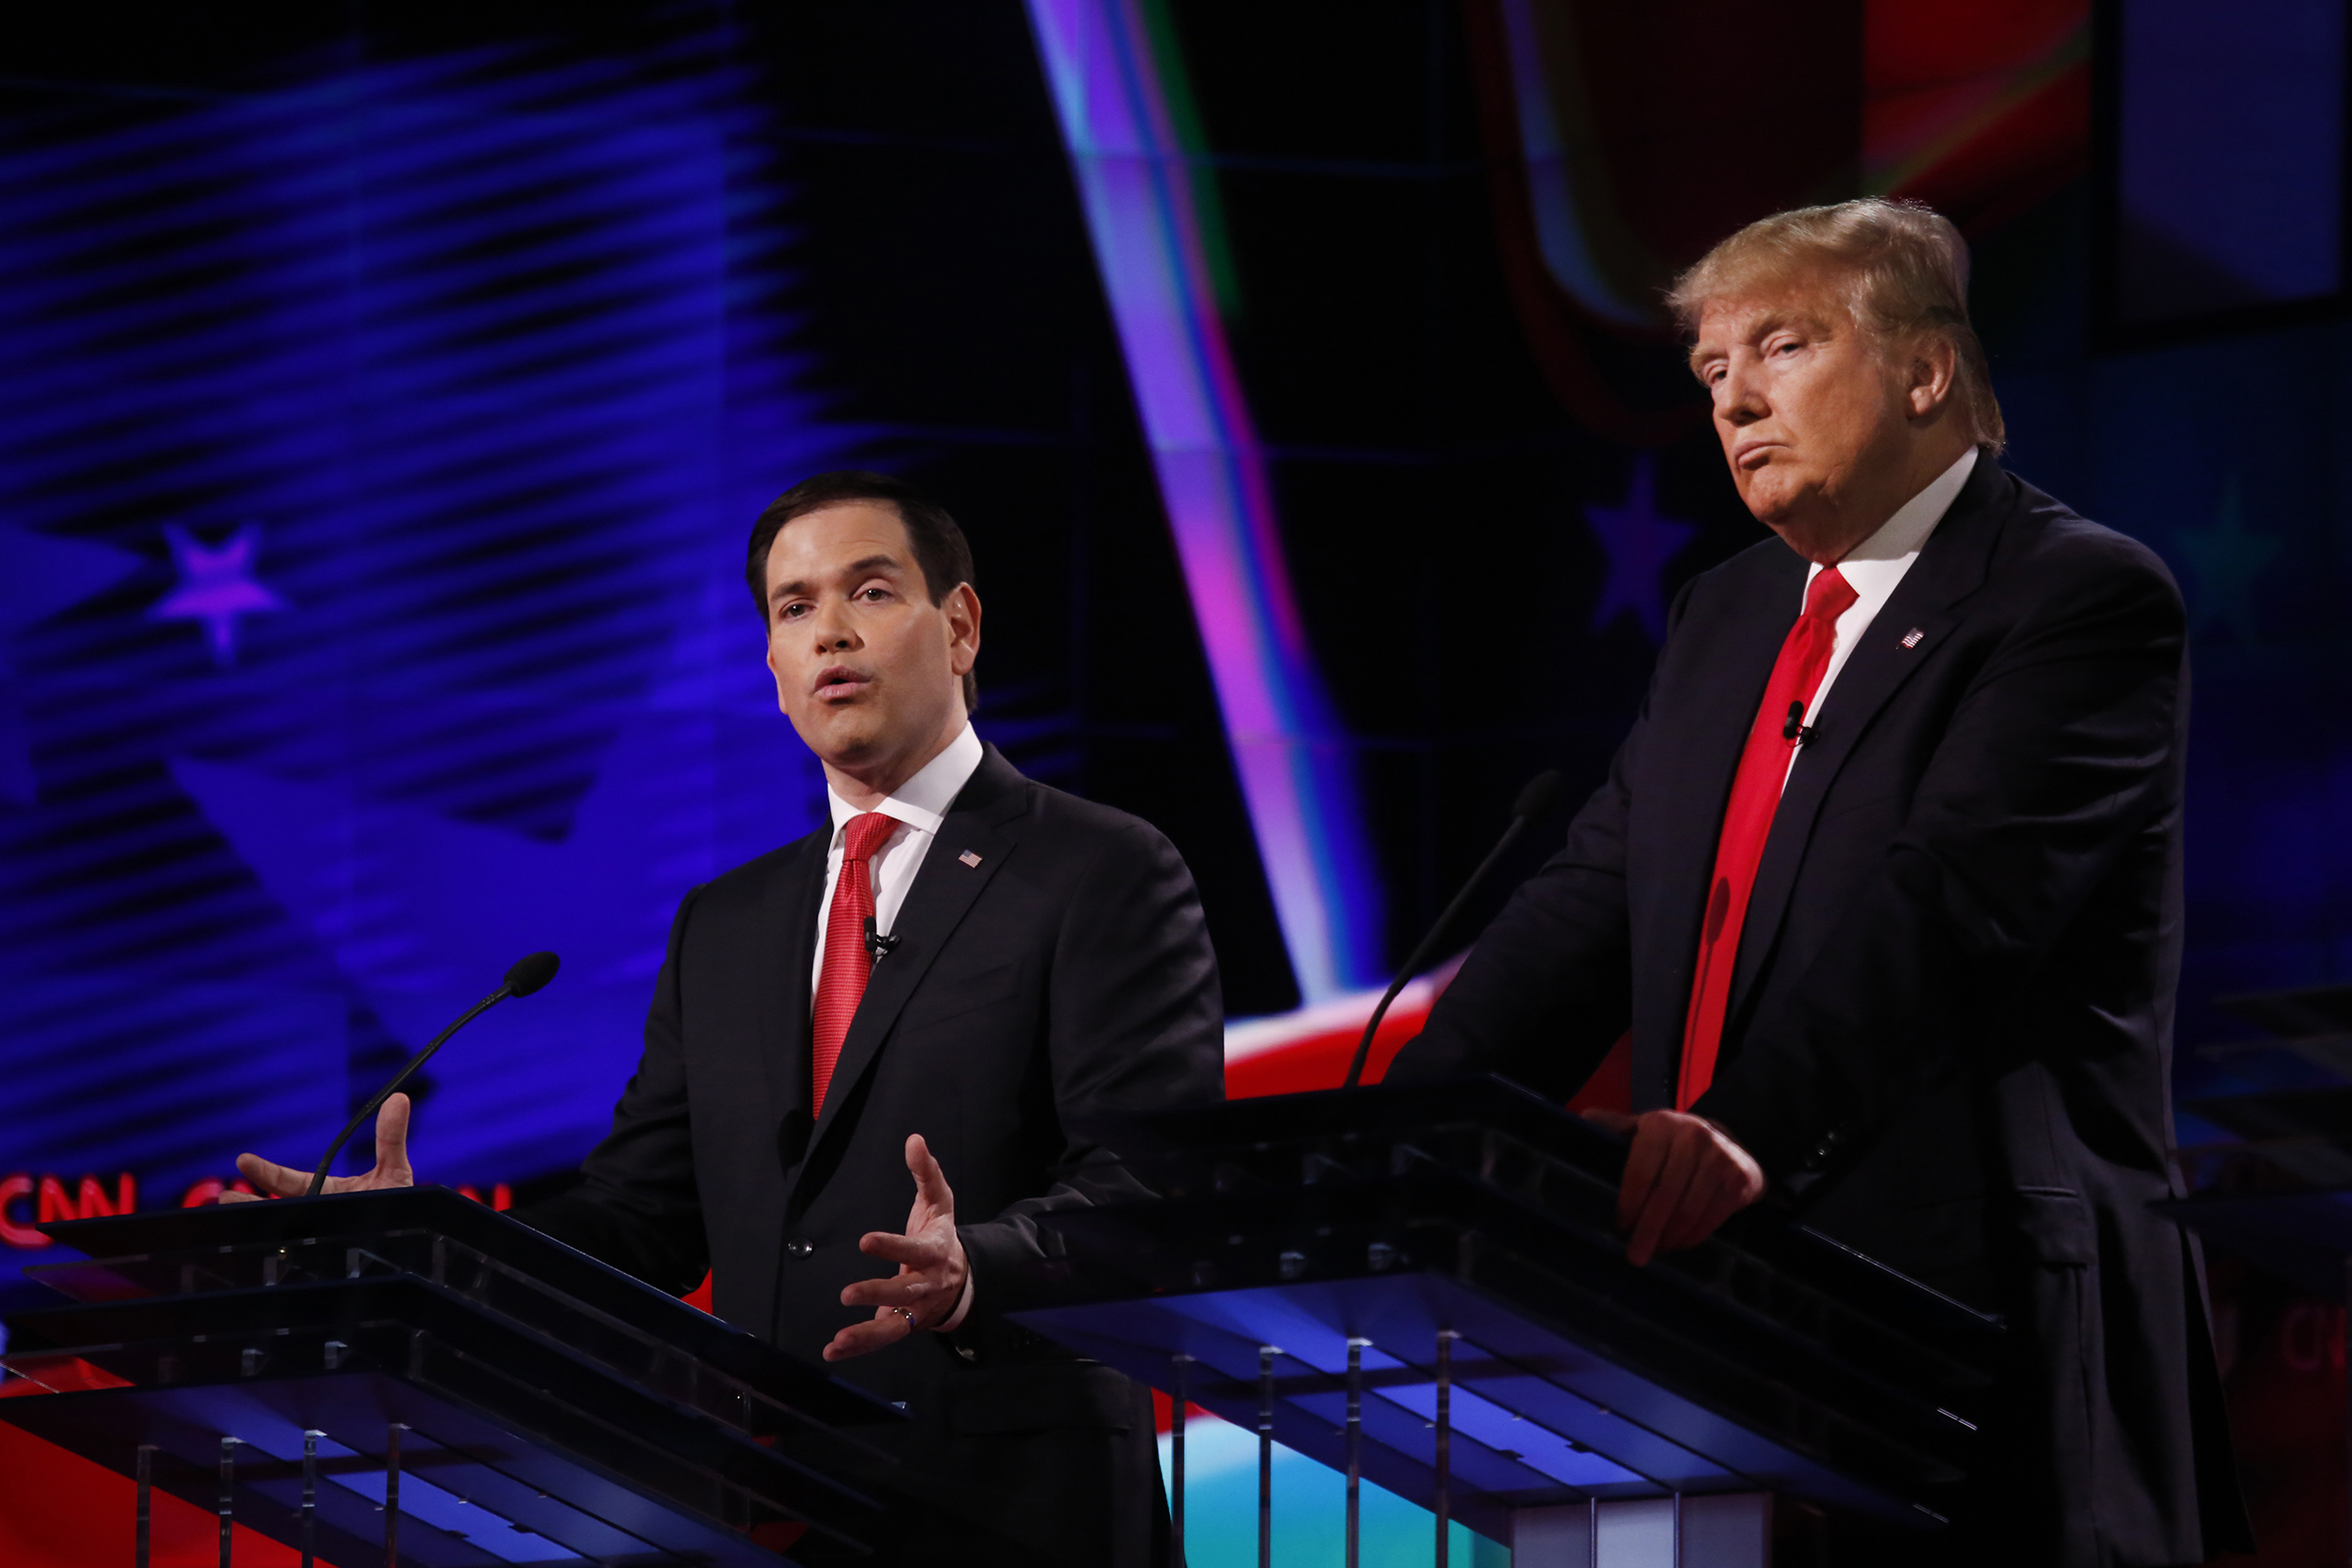 The four remaining Republican primary candidates Marco Rubio and Donald Trump debate at the University of Miami on March 10, 2016.